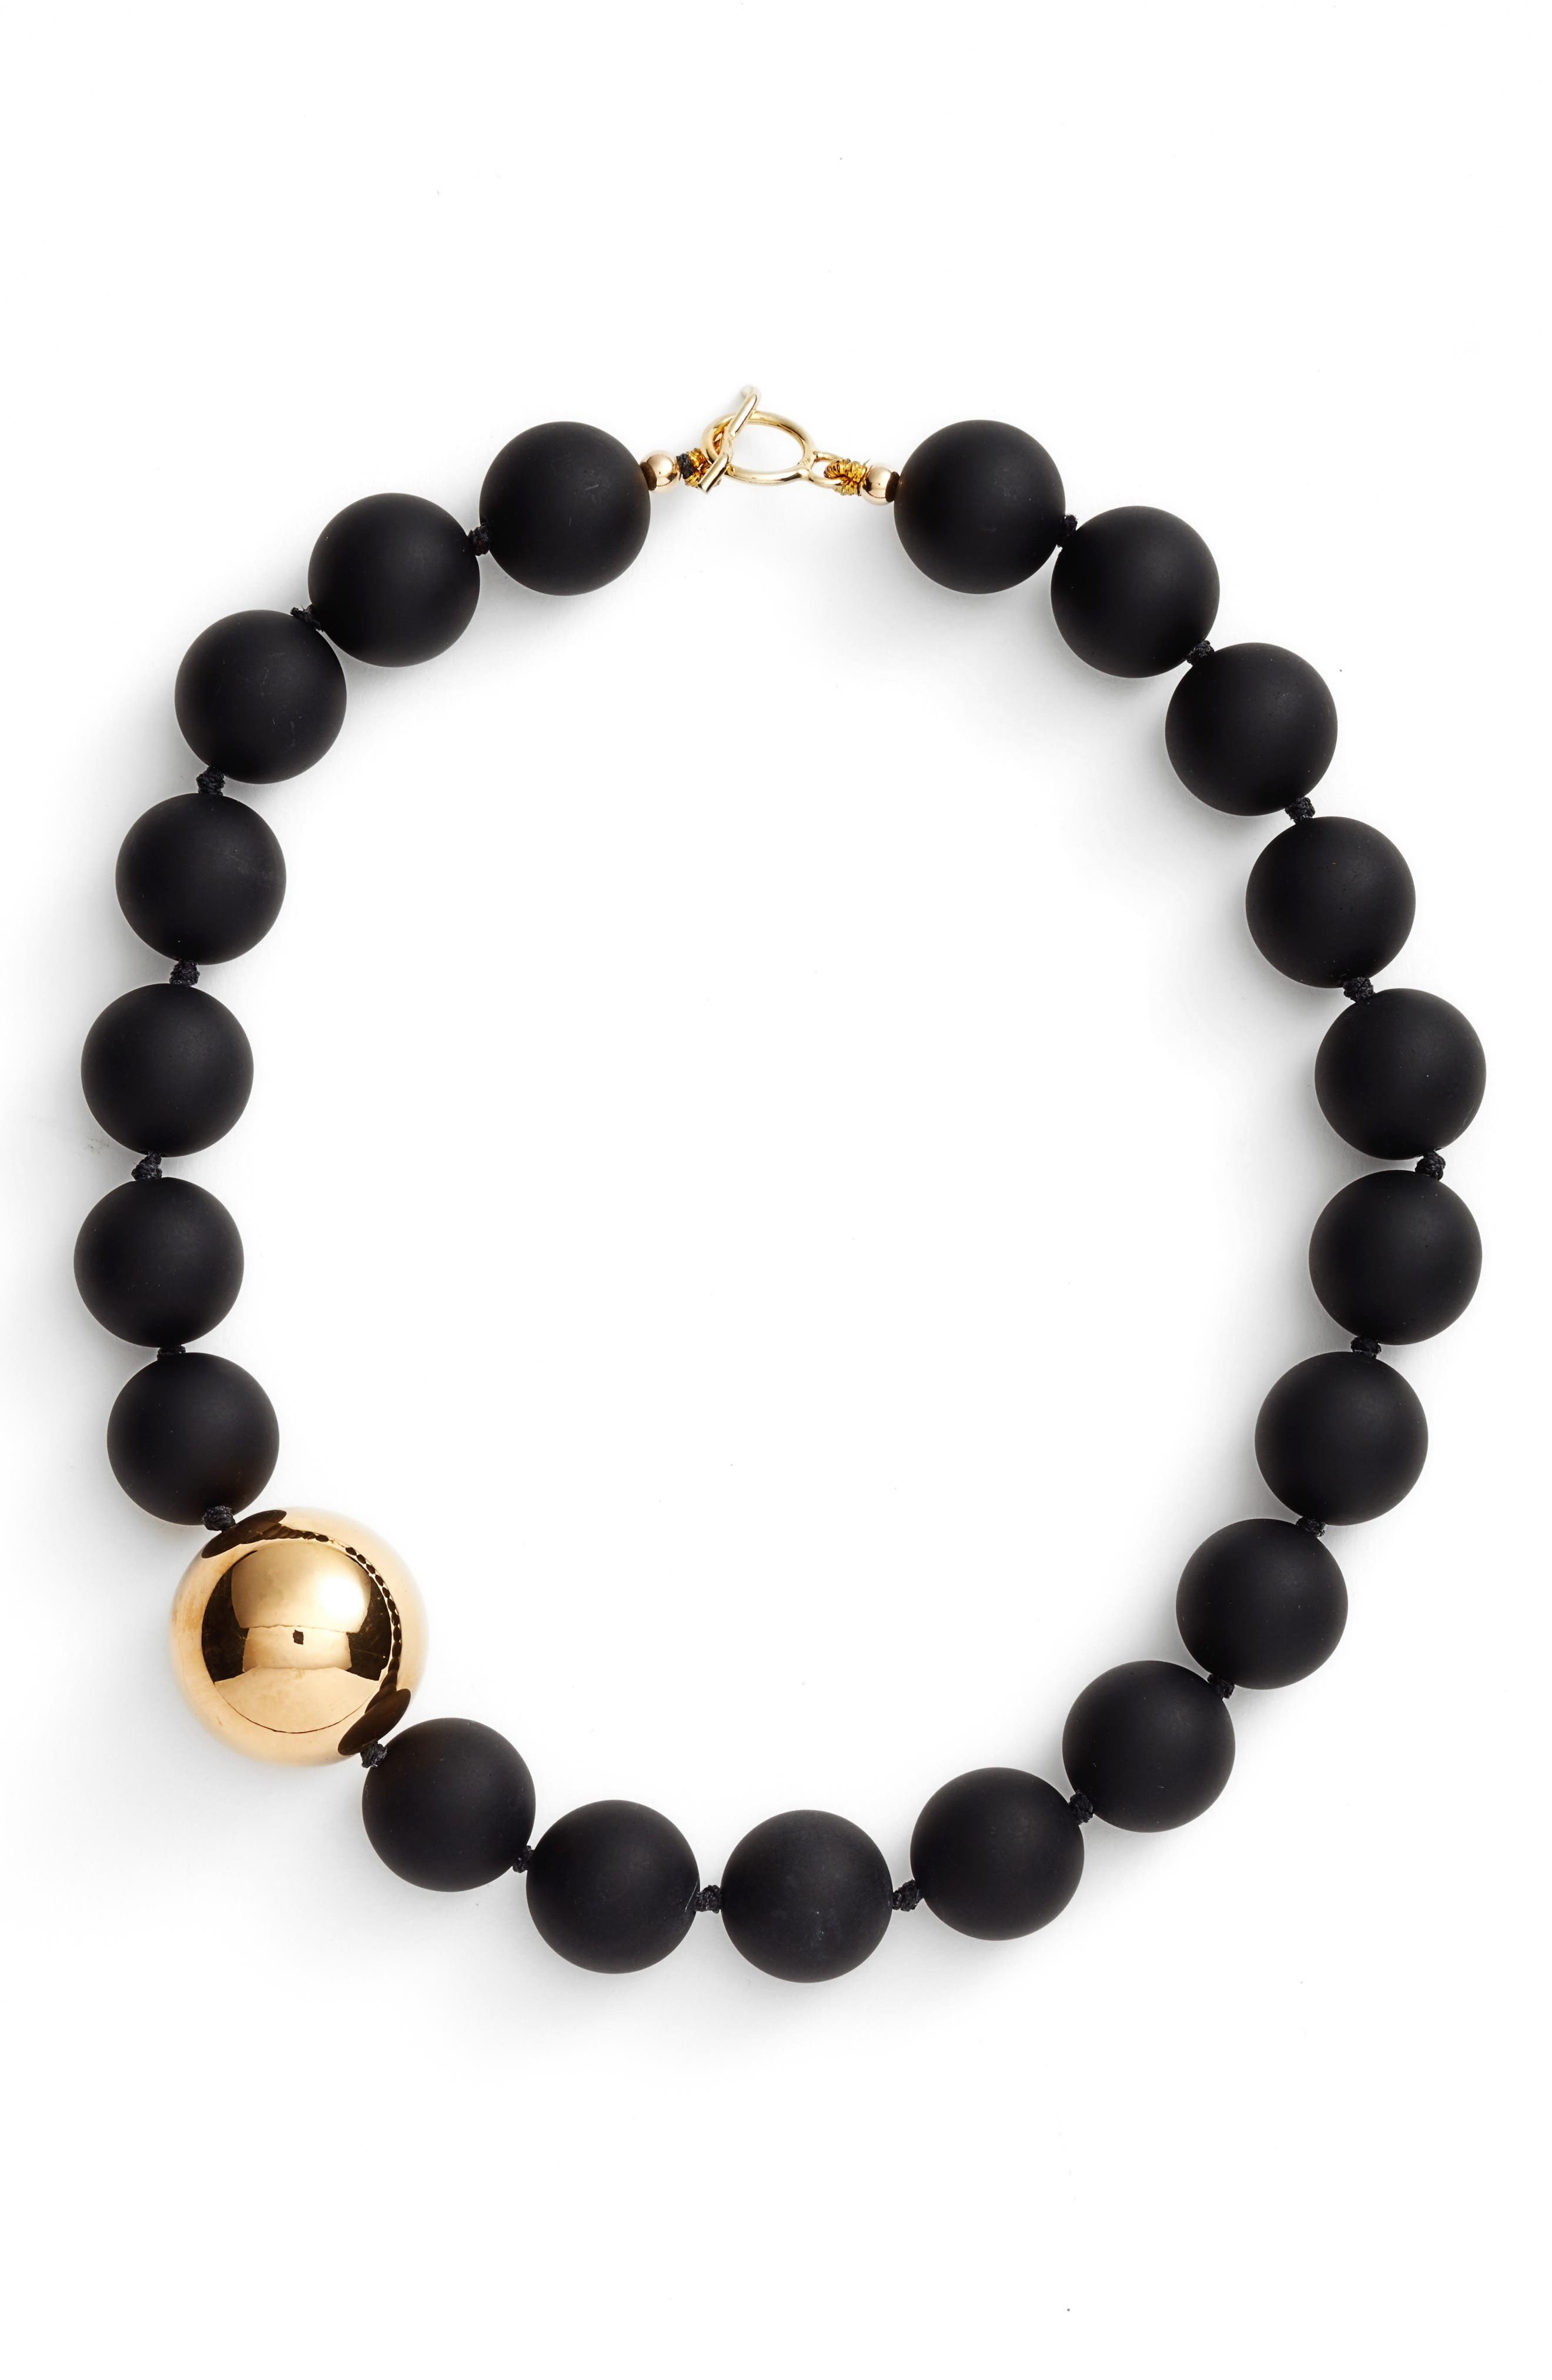 Simon Sebbag Vermeil Bead Matte Onyx Collar Necklace